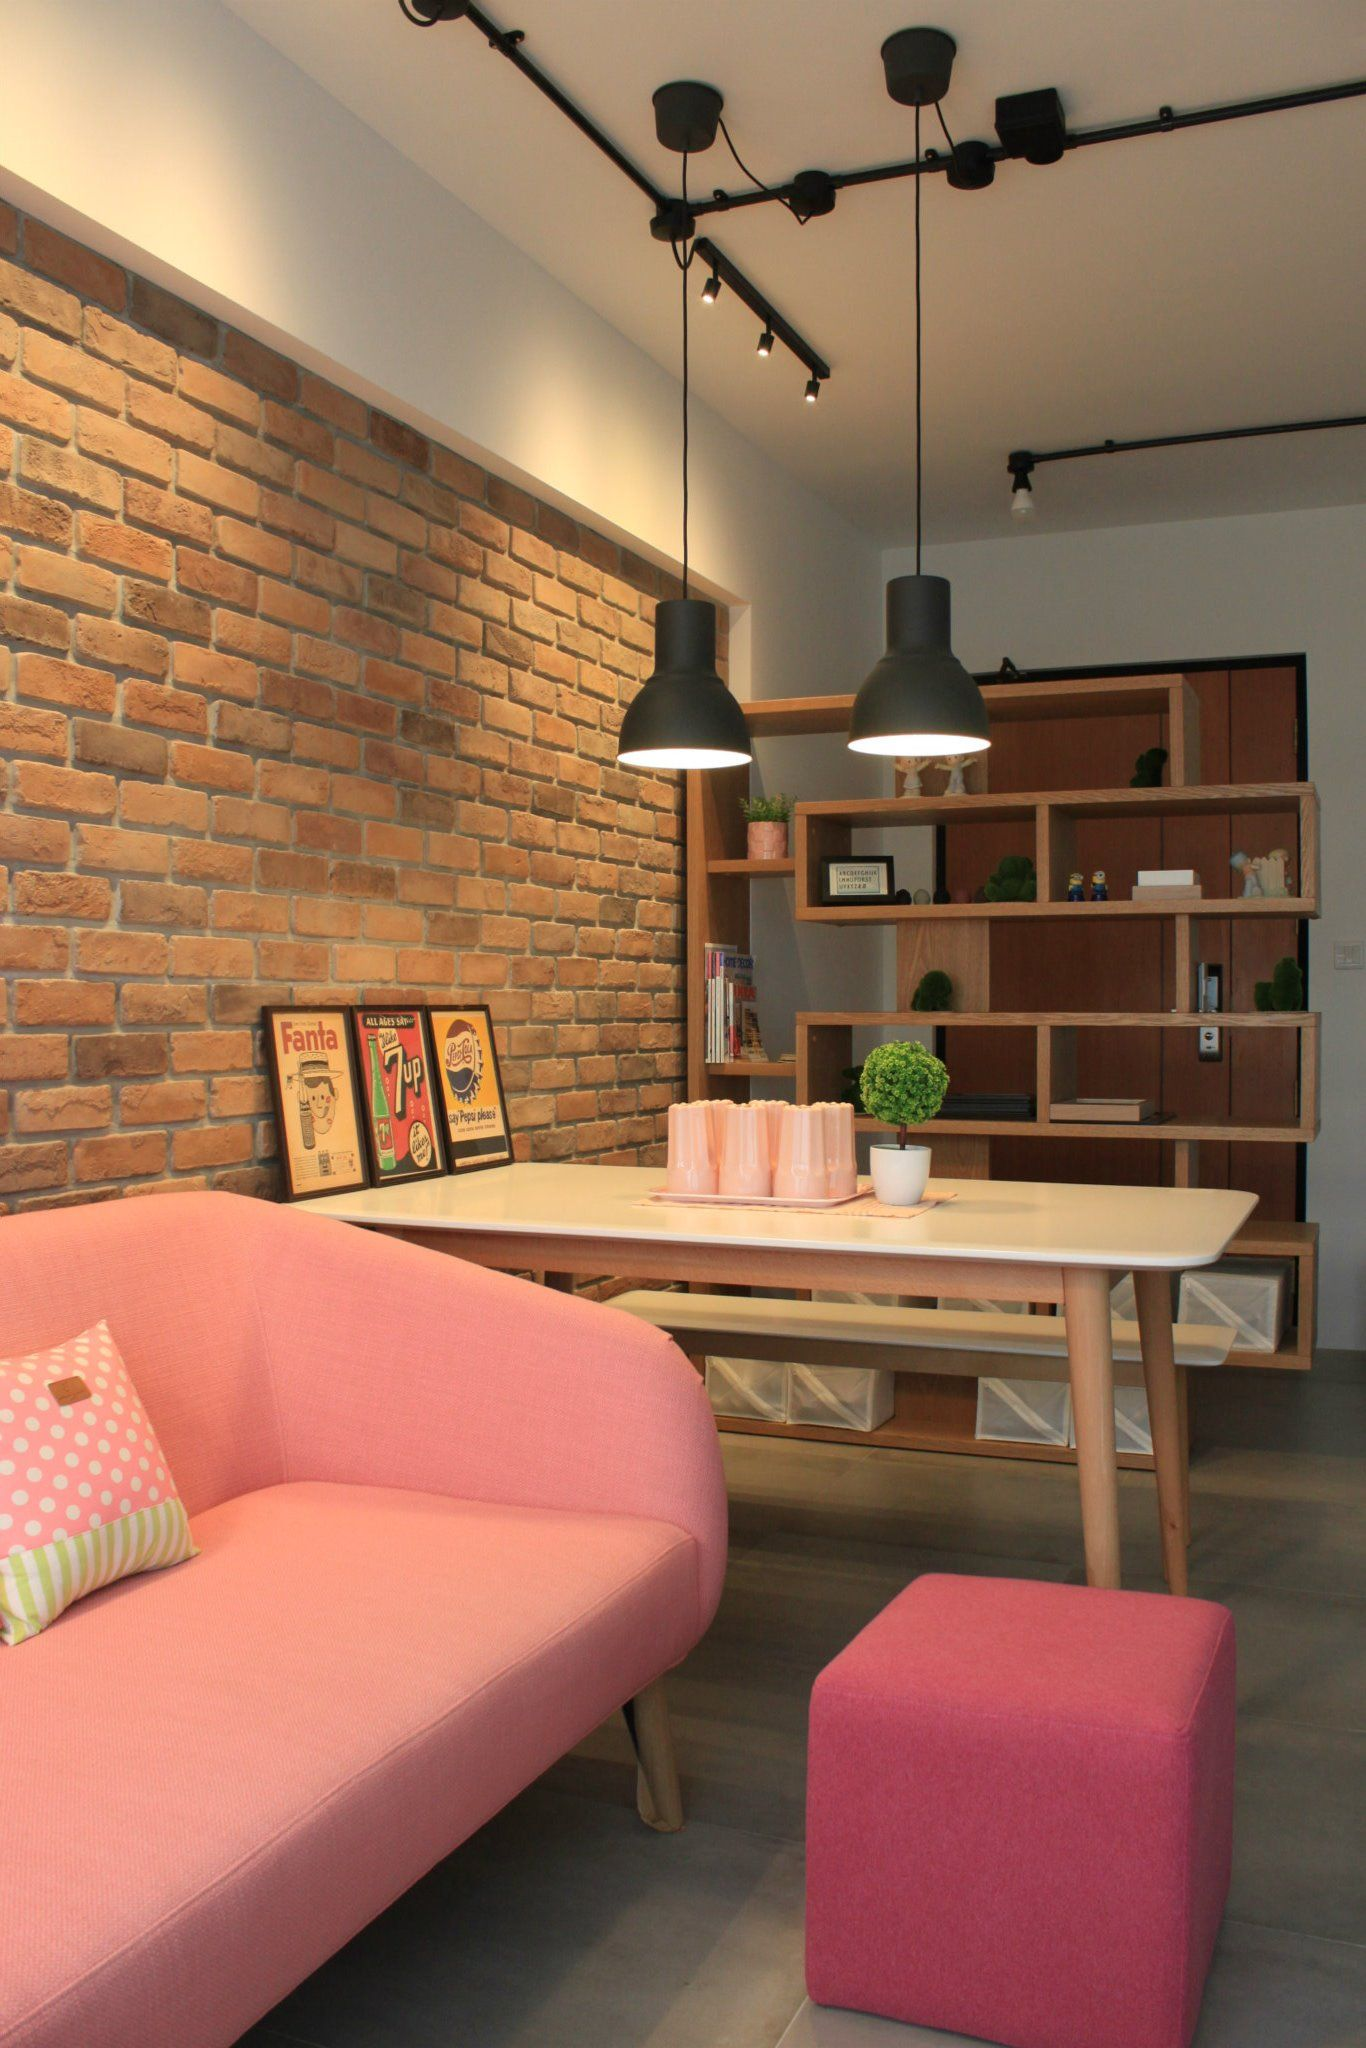 Small Condo Living Room Design: 4 Room BTO - Living Room - Pink Is New.